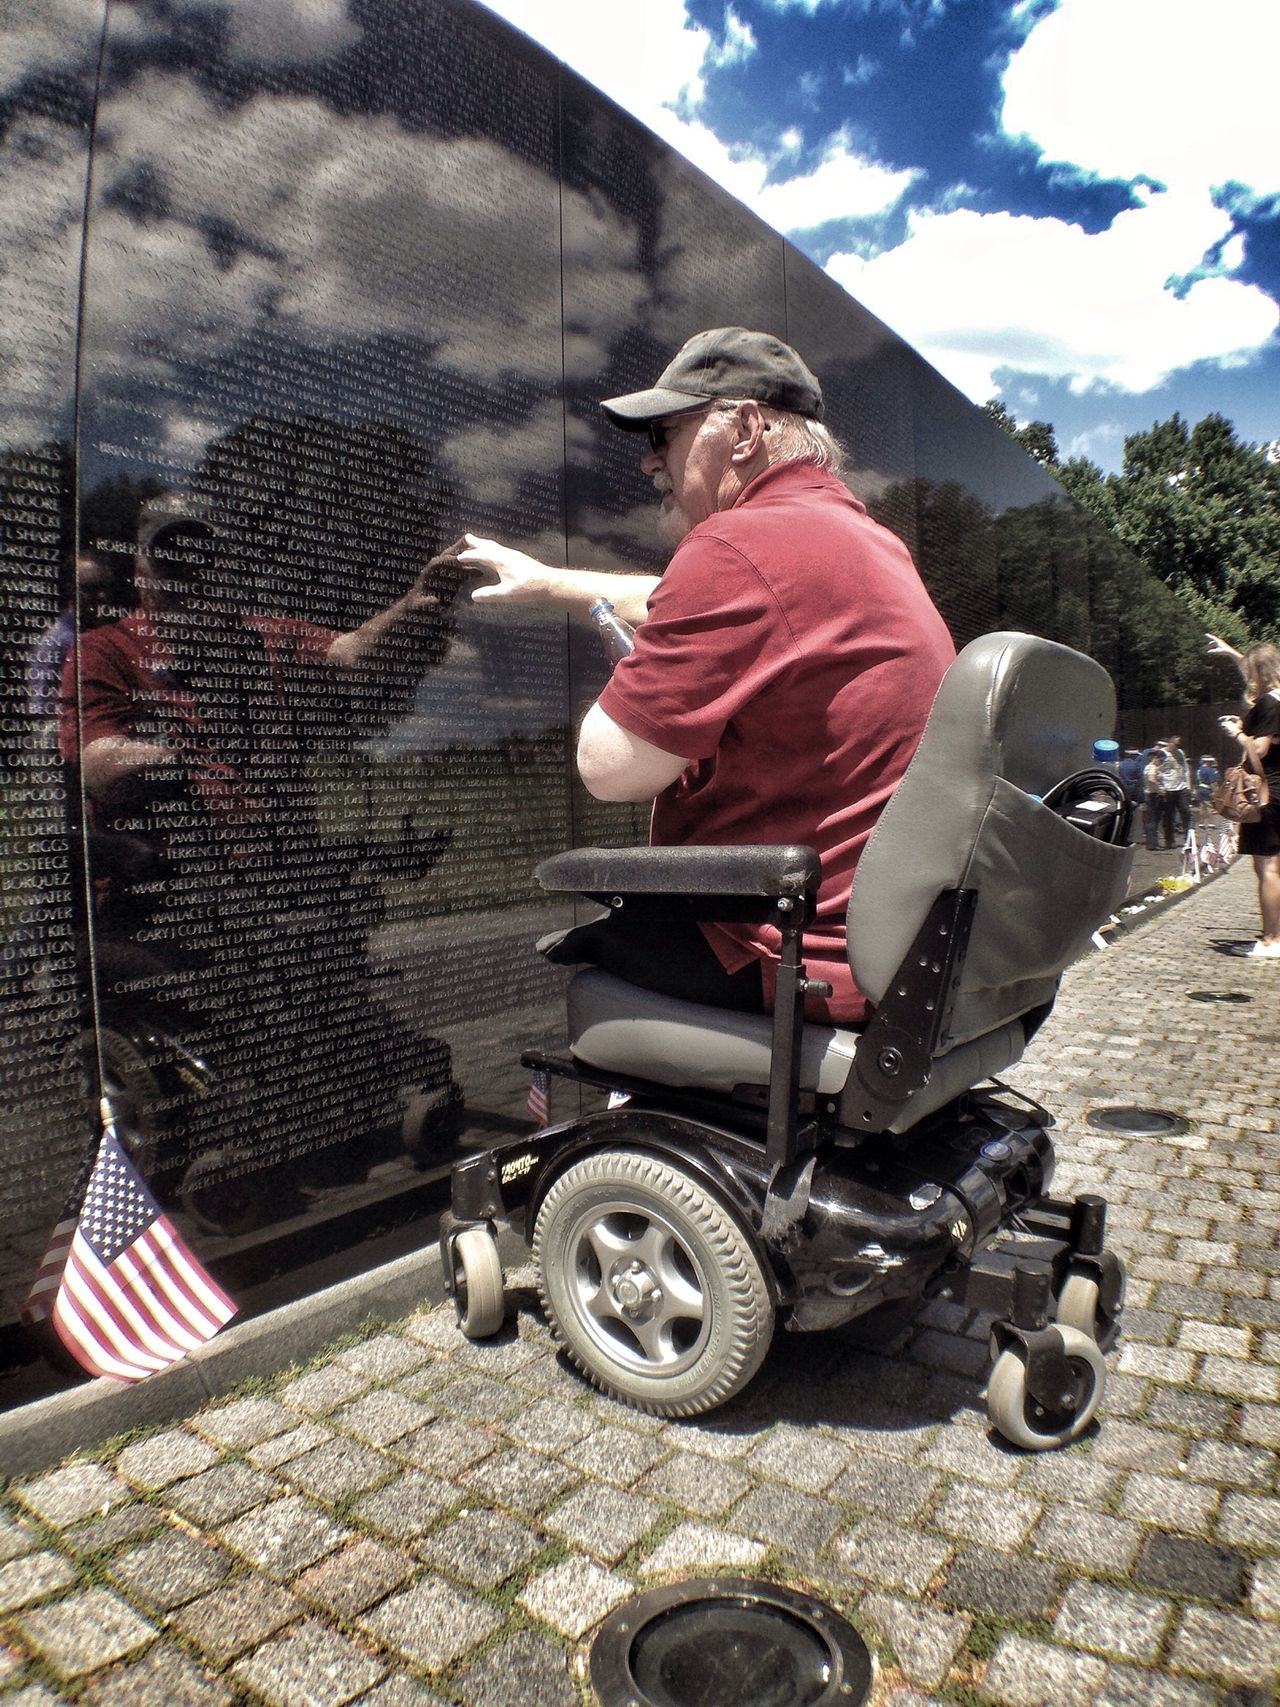 Remembering! War Memorial Vietnam War Memorial Remembering Portrait Of America What I Value Untold Stories Telling Stories Differently Feel The Journey